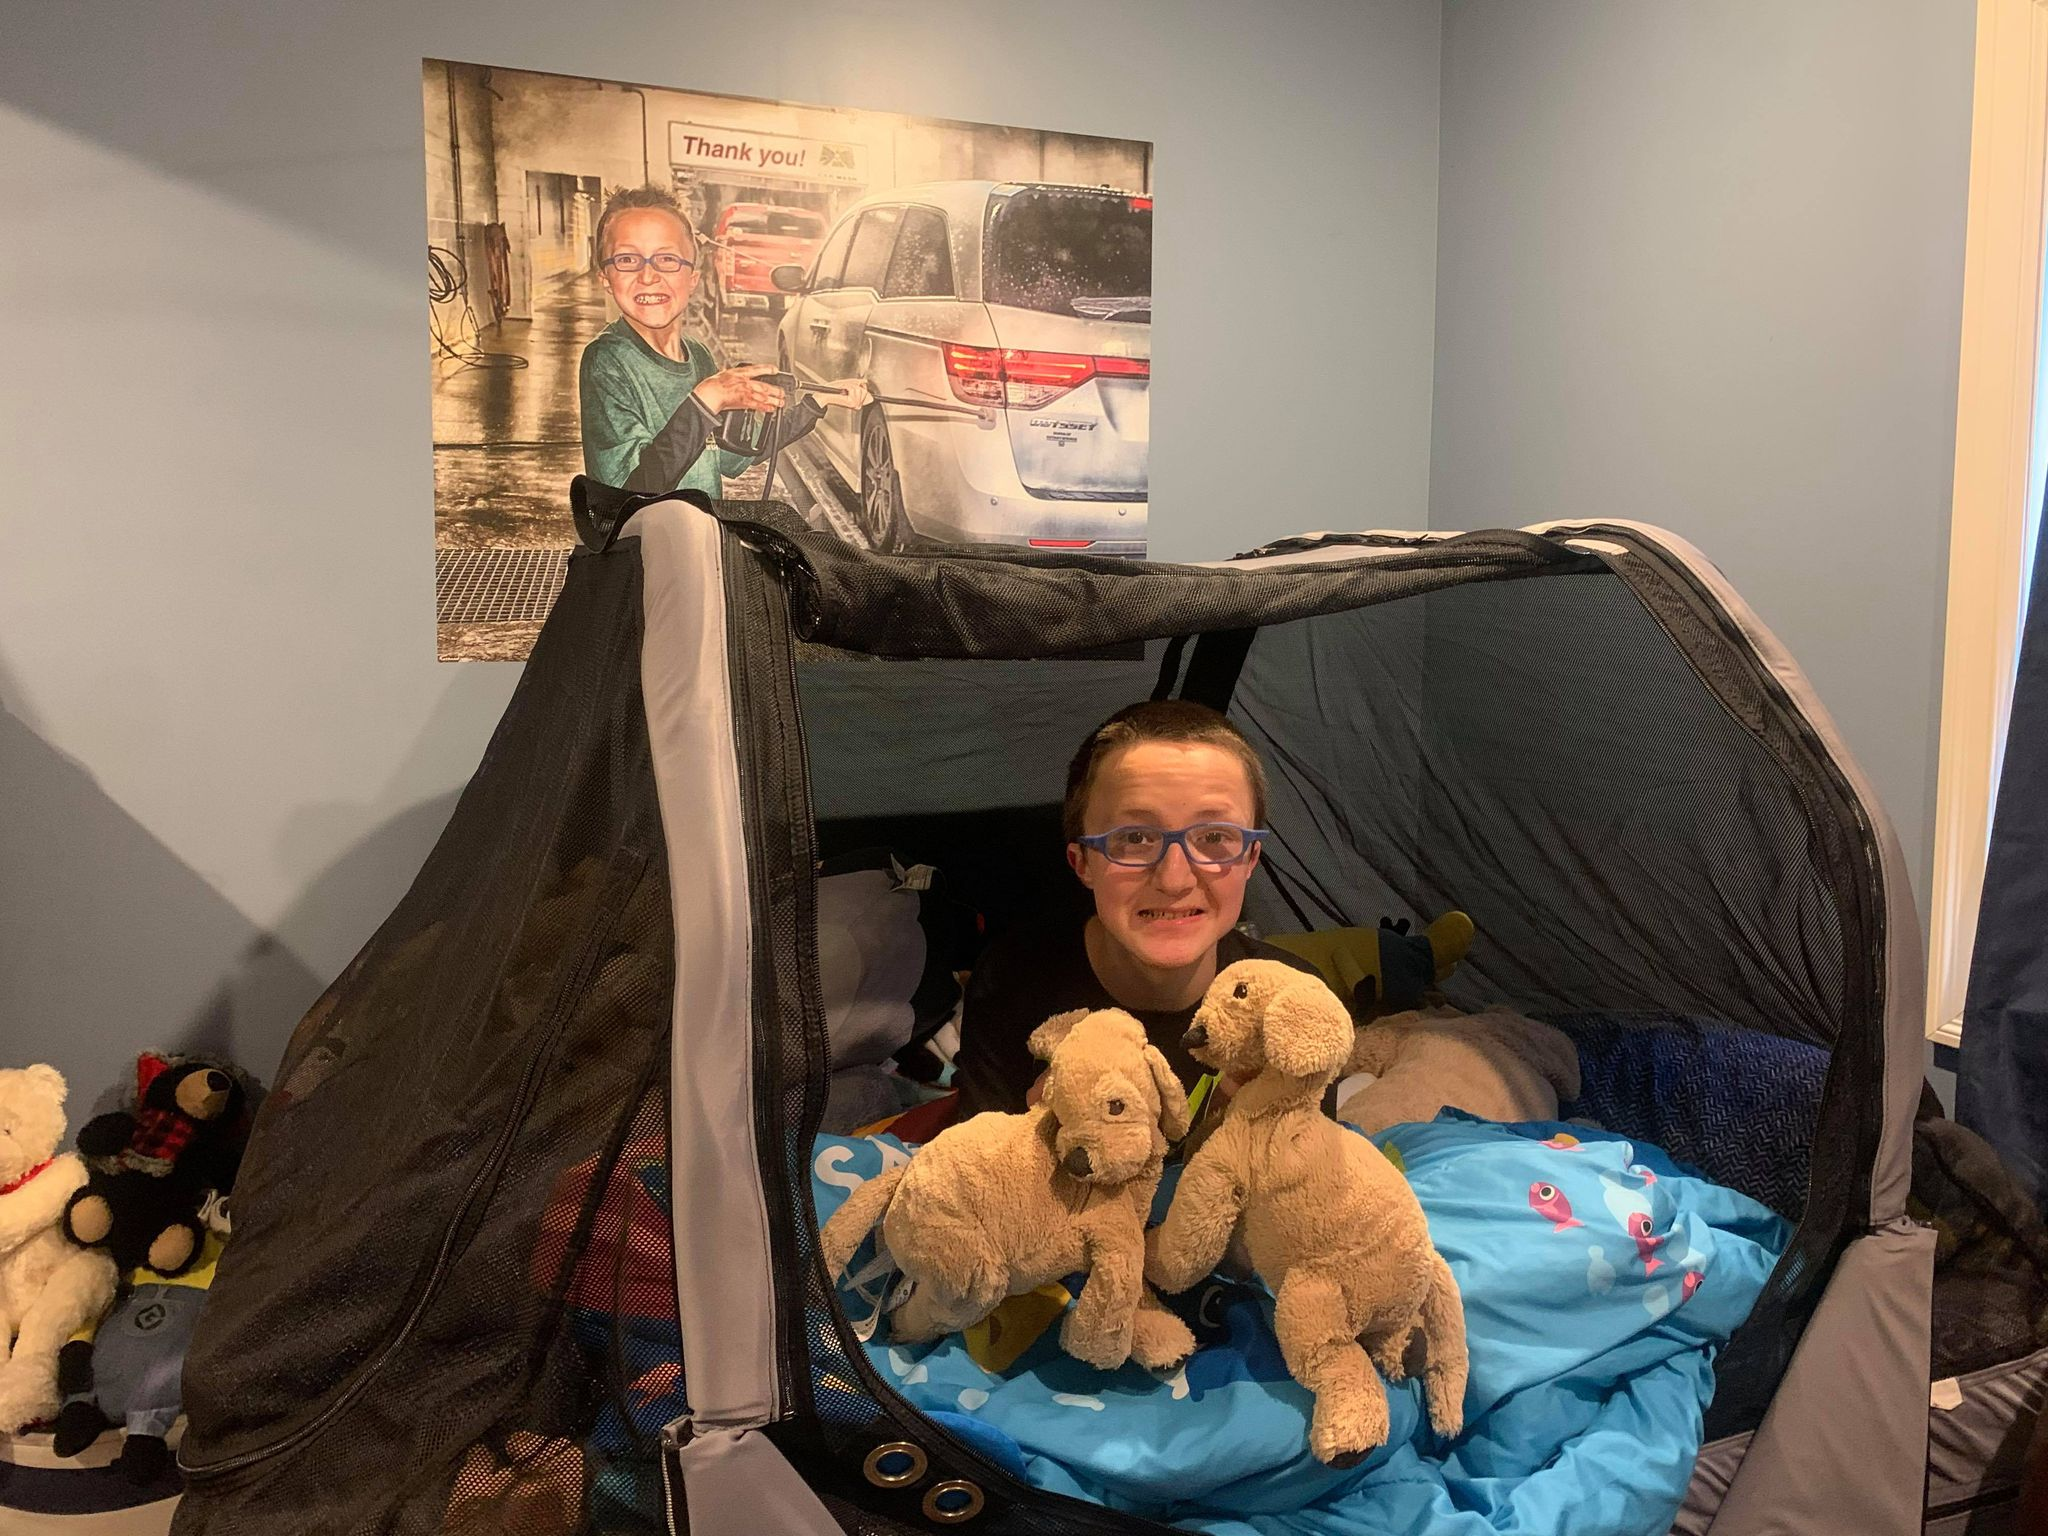 A young boy in his Safety Sleeper enclosed safety bed with two stuffed animals